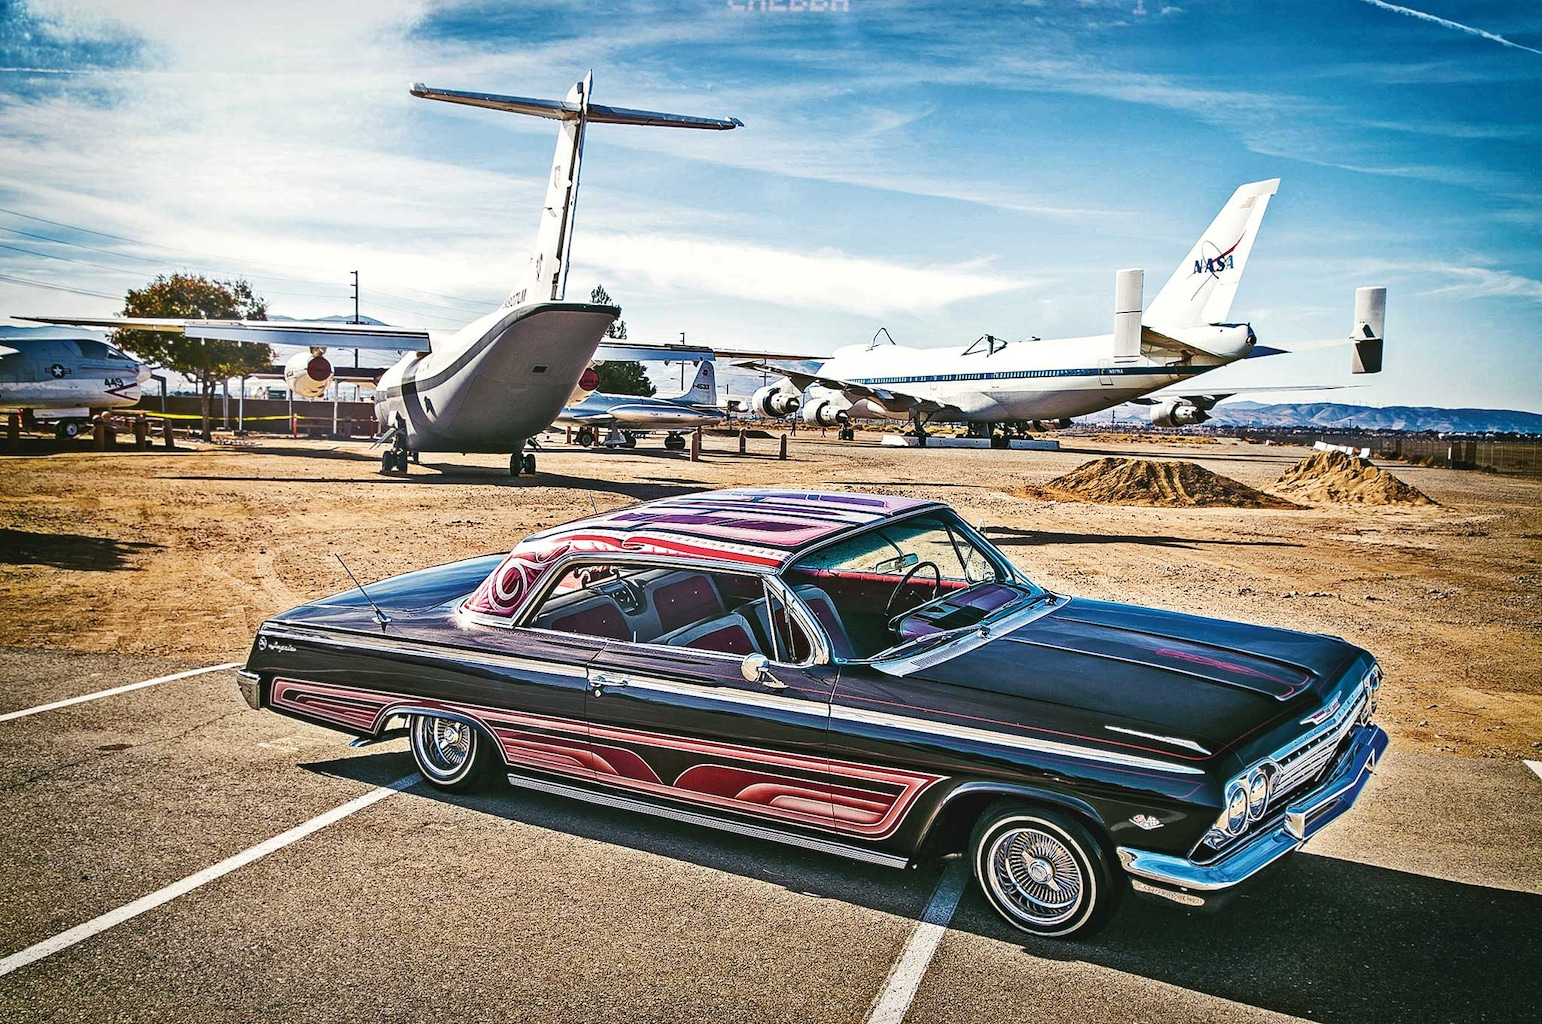 Ready for takeoff, the '62 Impala had some sharp body lines and style.